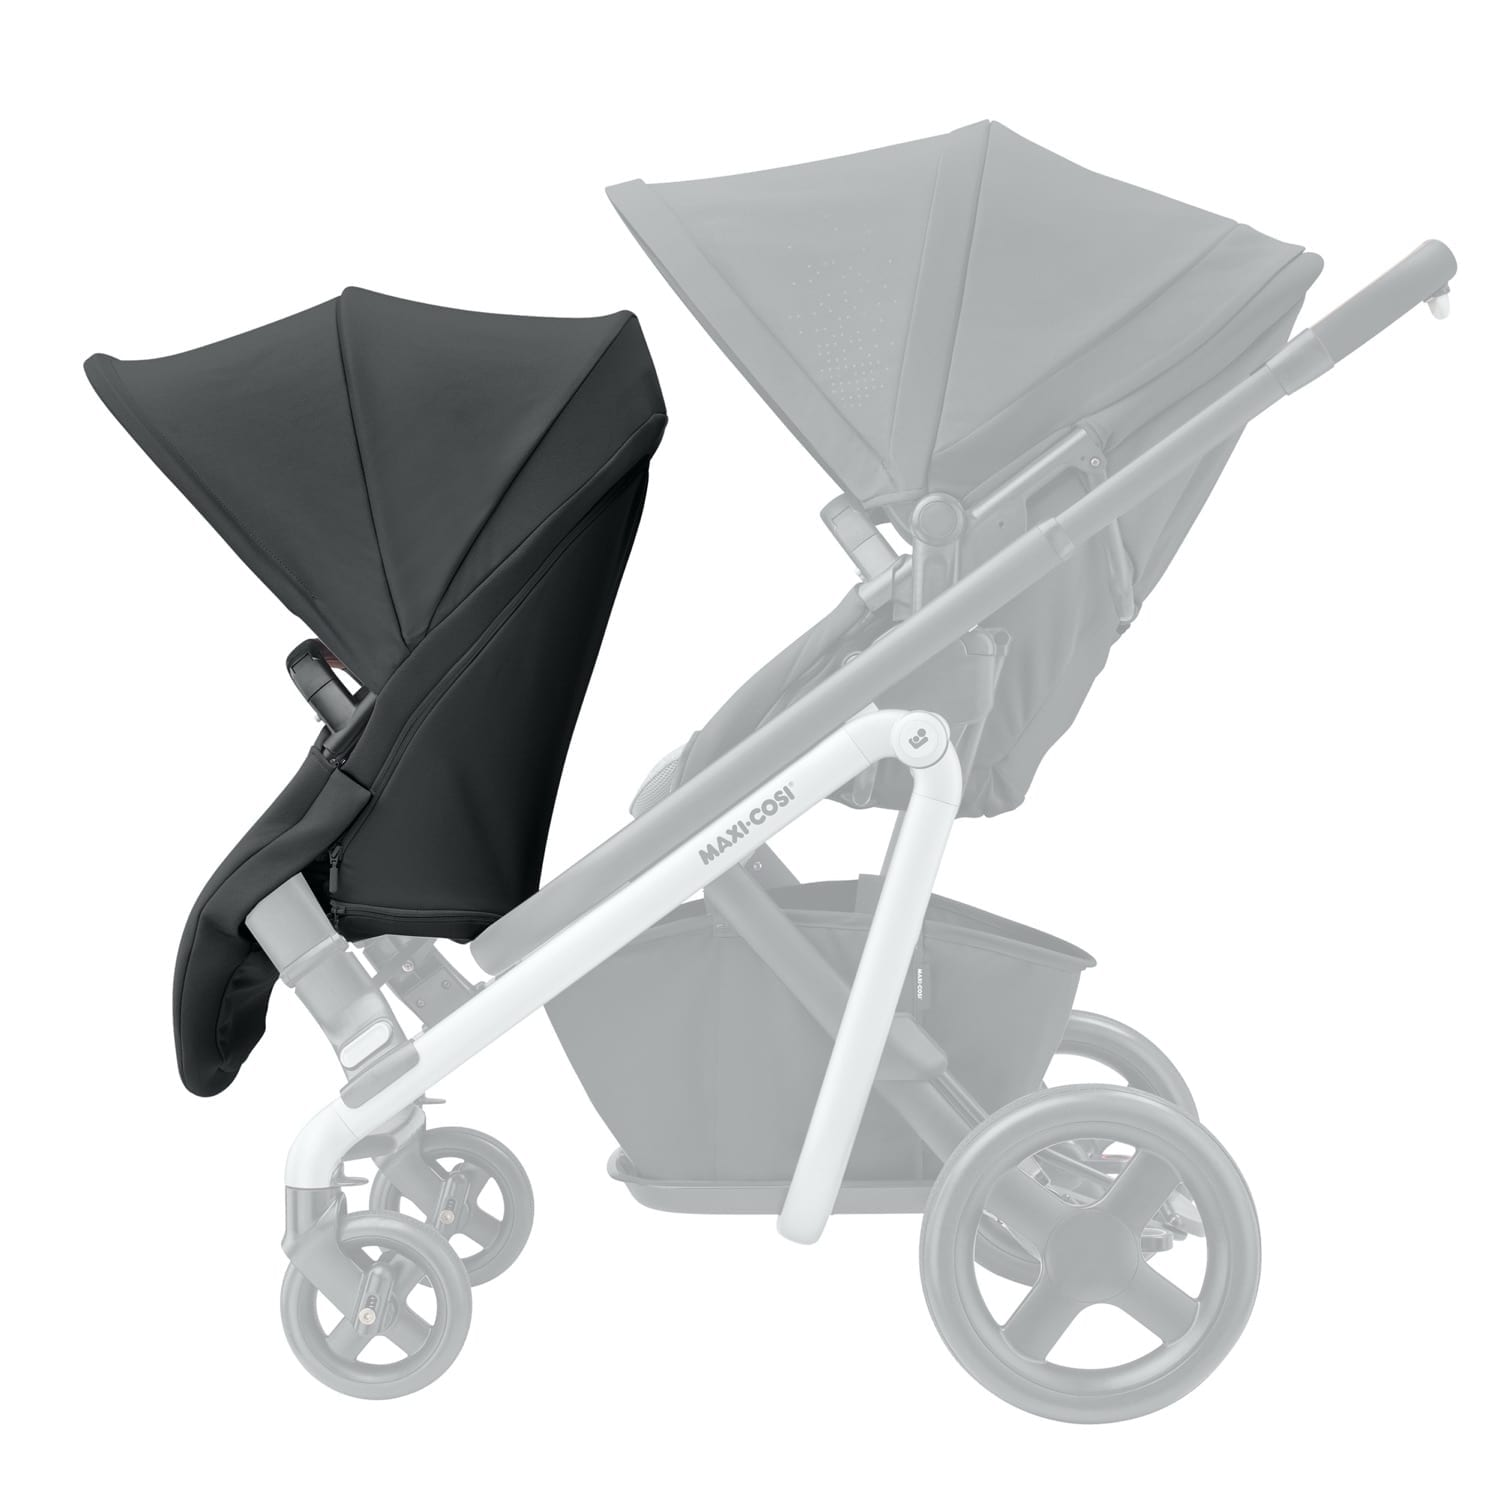 Maxi Cosi Lila Duo Seat Unit – Nomad Black product image